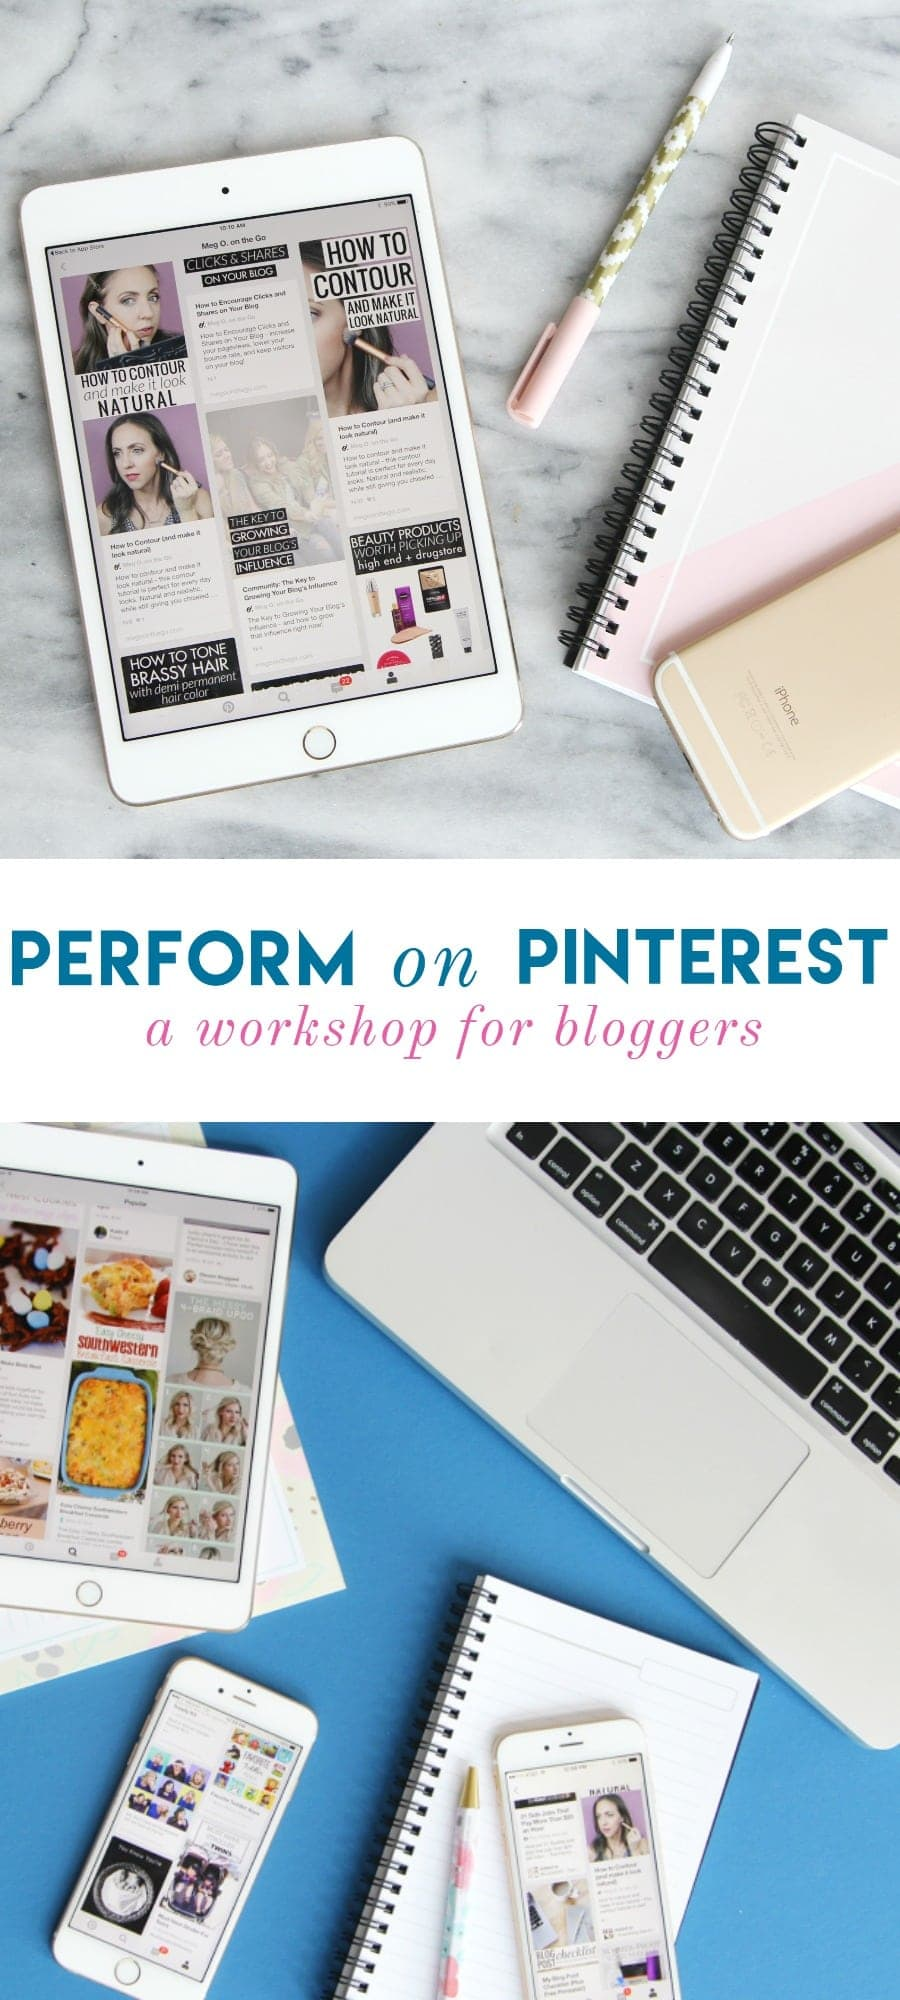 One pin on Pinterest could initially drive impressions for days, but it can live and constantly be repinned and clicked for months and years. Why should you focus on Pinterest? BECAUSE IT'S FREE, LONG-TERM TRAFFIC TO YOUR SITE!